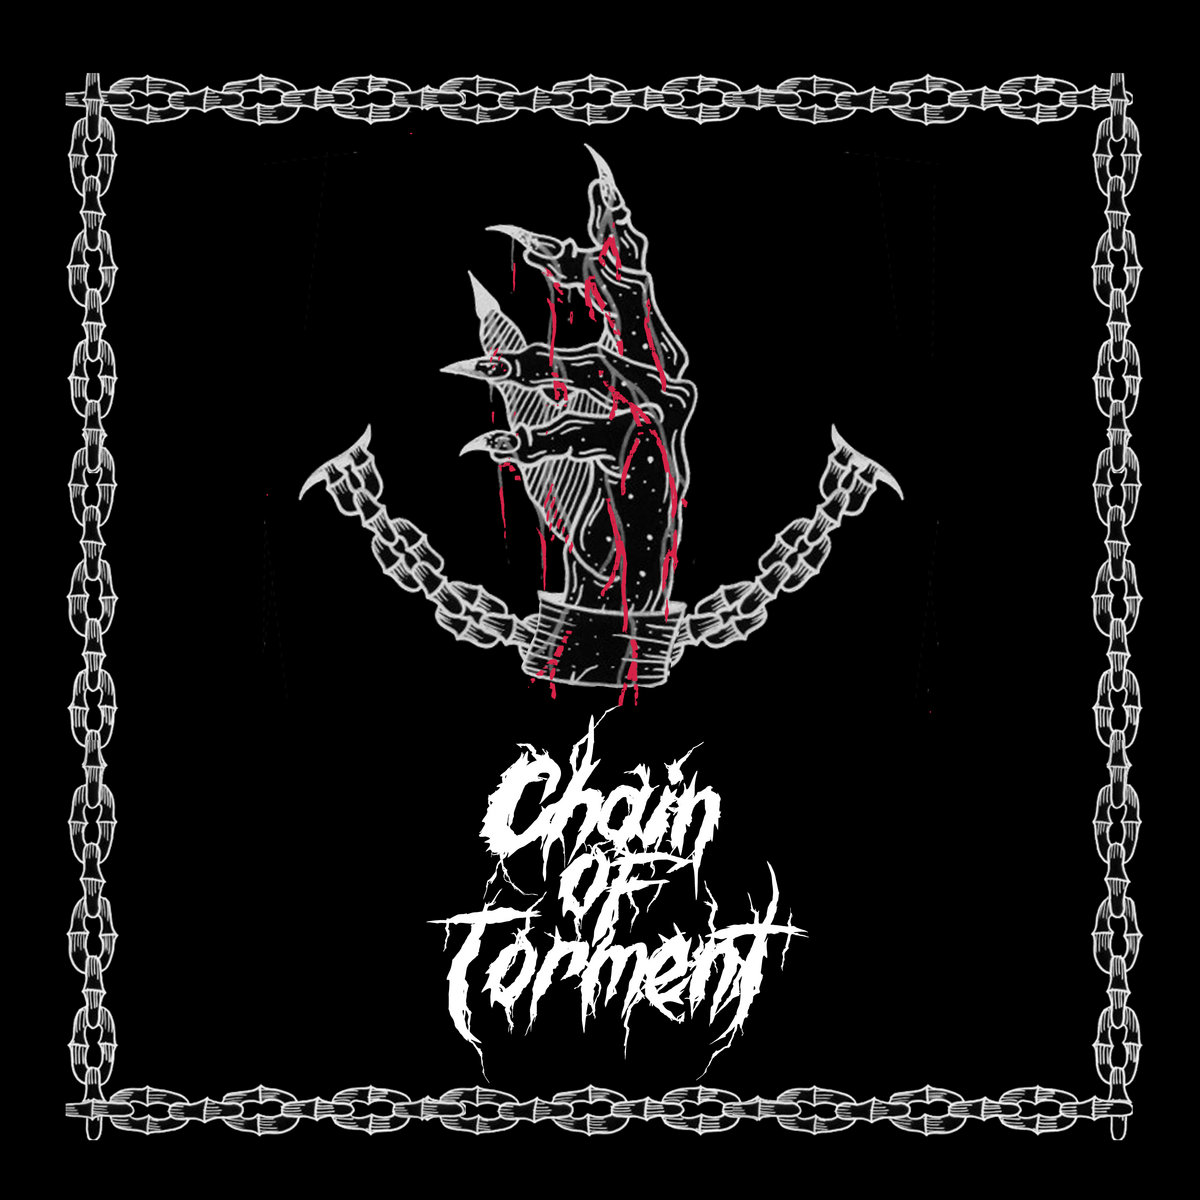 Chain of Torment - Chain of Torment [EP] (2018)